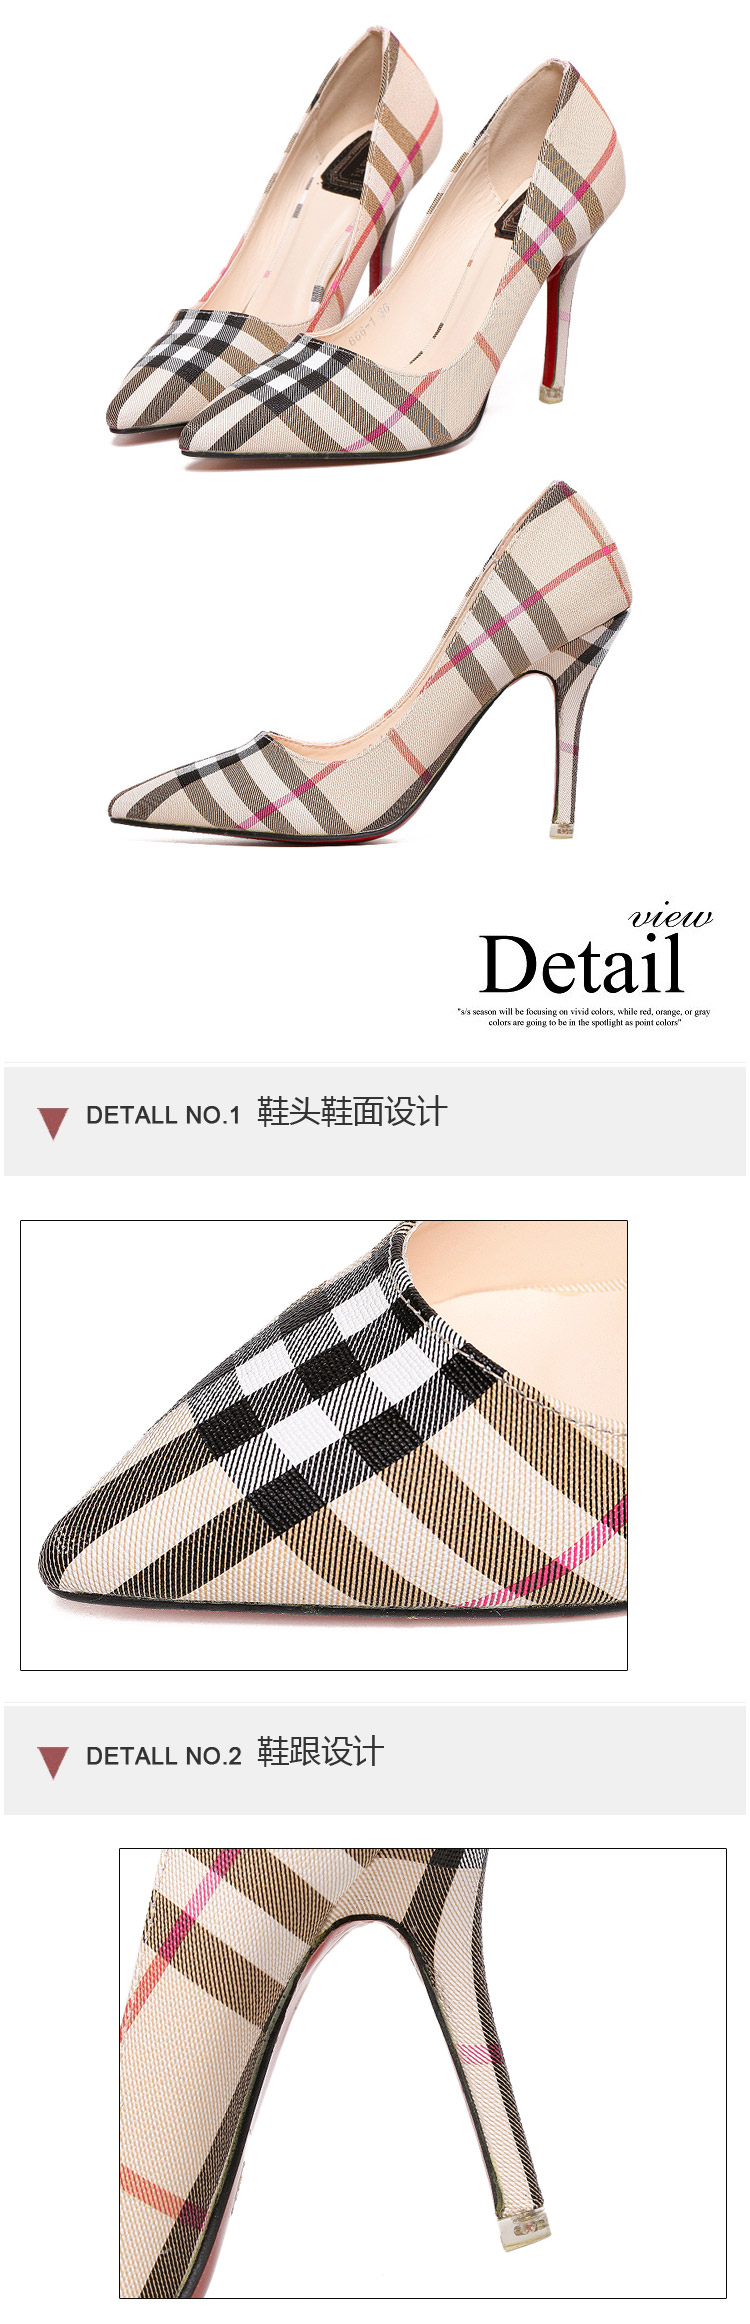 2016 New fashion brand High Heels pointed Toe Plaid Pumps  Woman Sexy Fashion Women's Shoes Party Dress Pumps L079